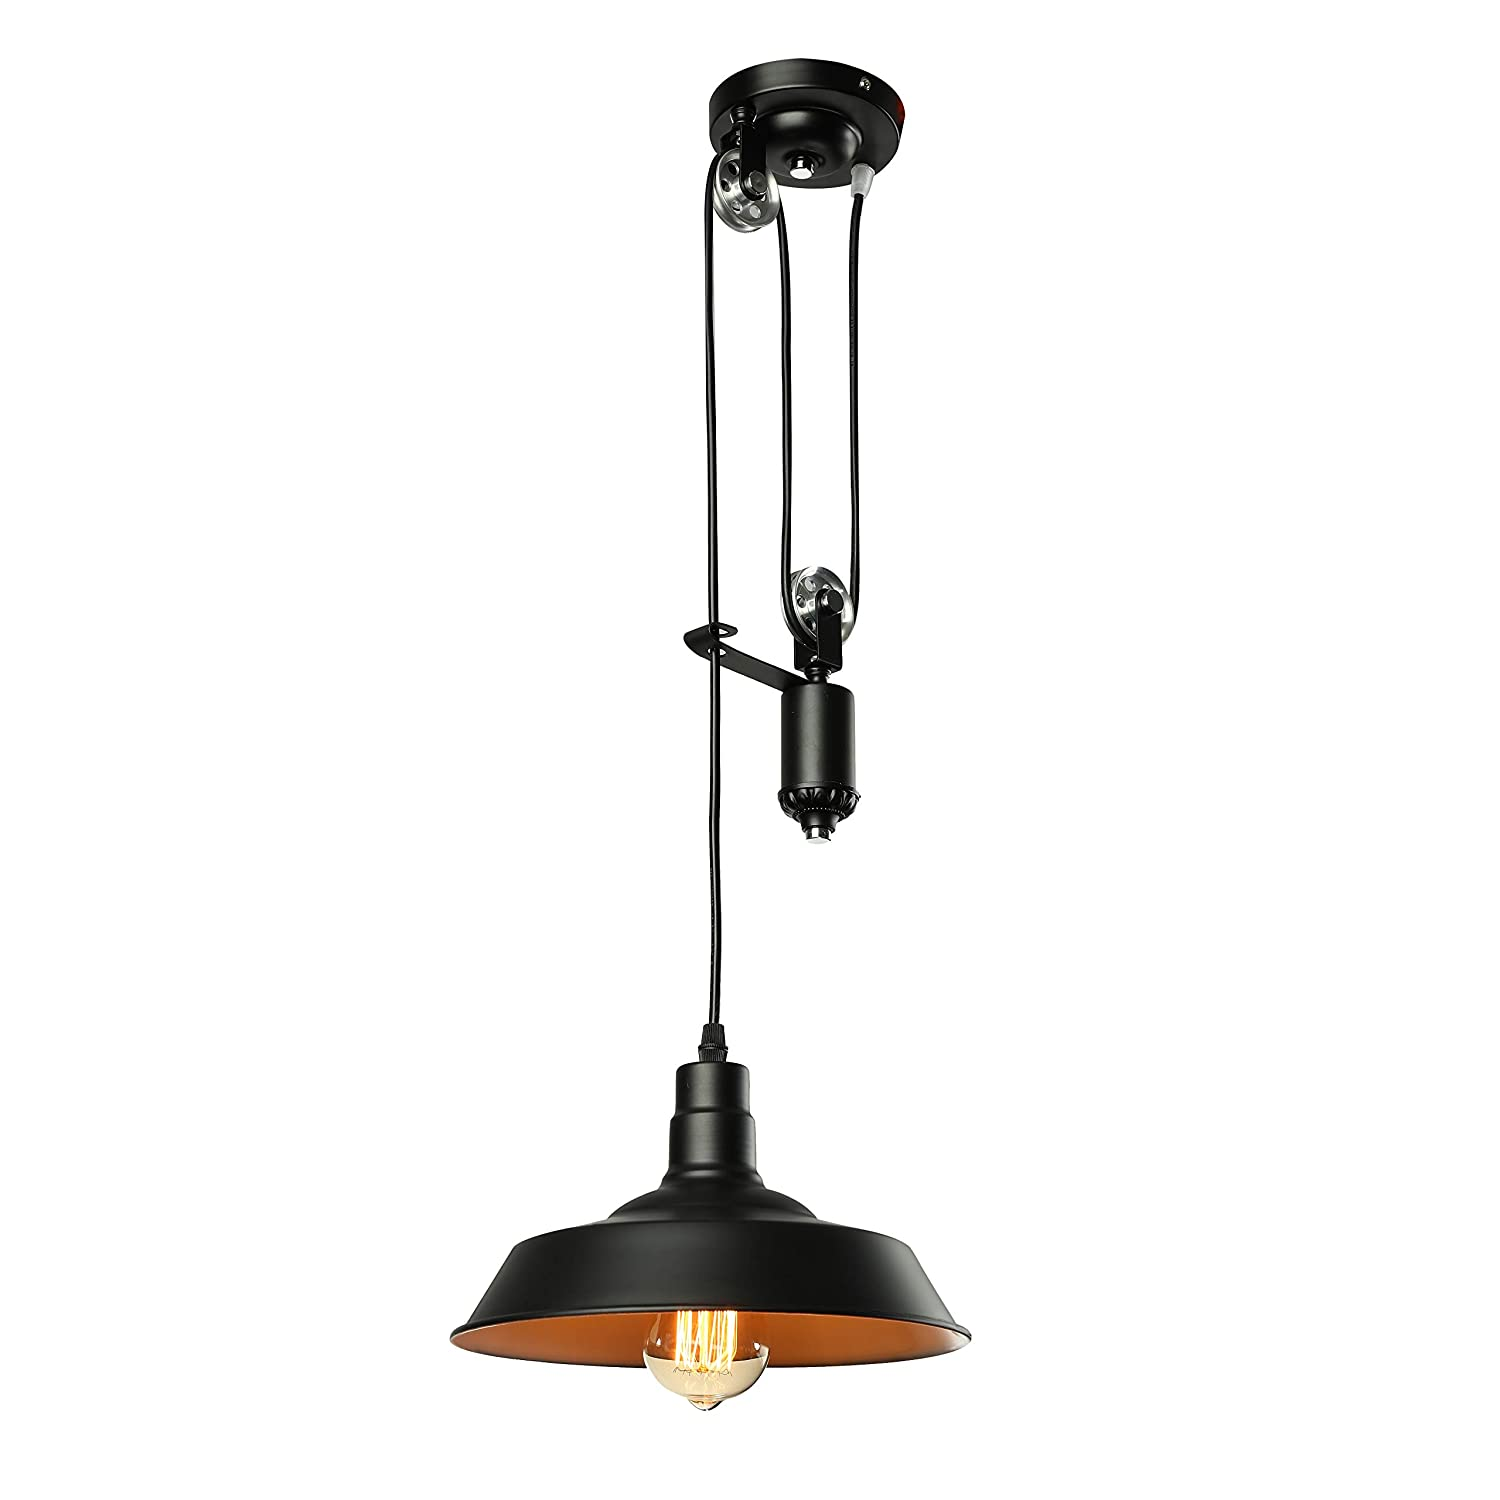 Jinguo lighting bright adjustable pulley light fixture pendant lights hanging lamp chandelier with metal shade in vintage industrial style for indoor